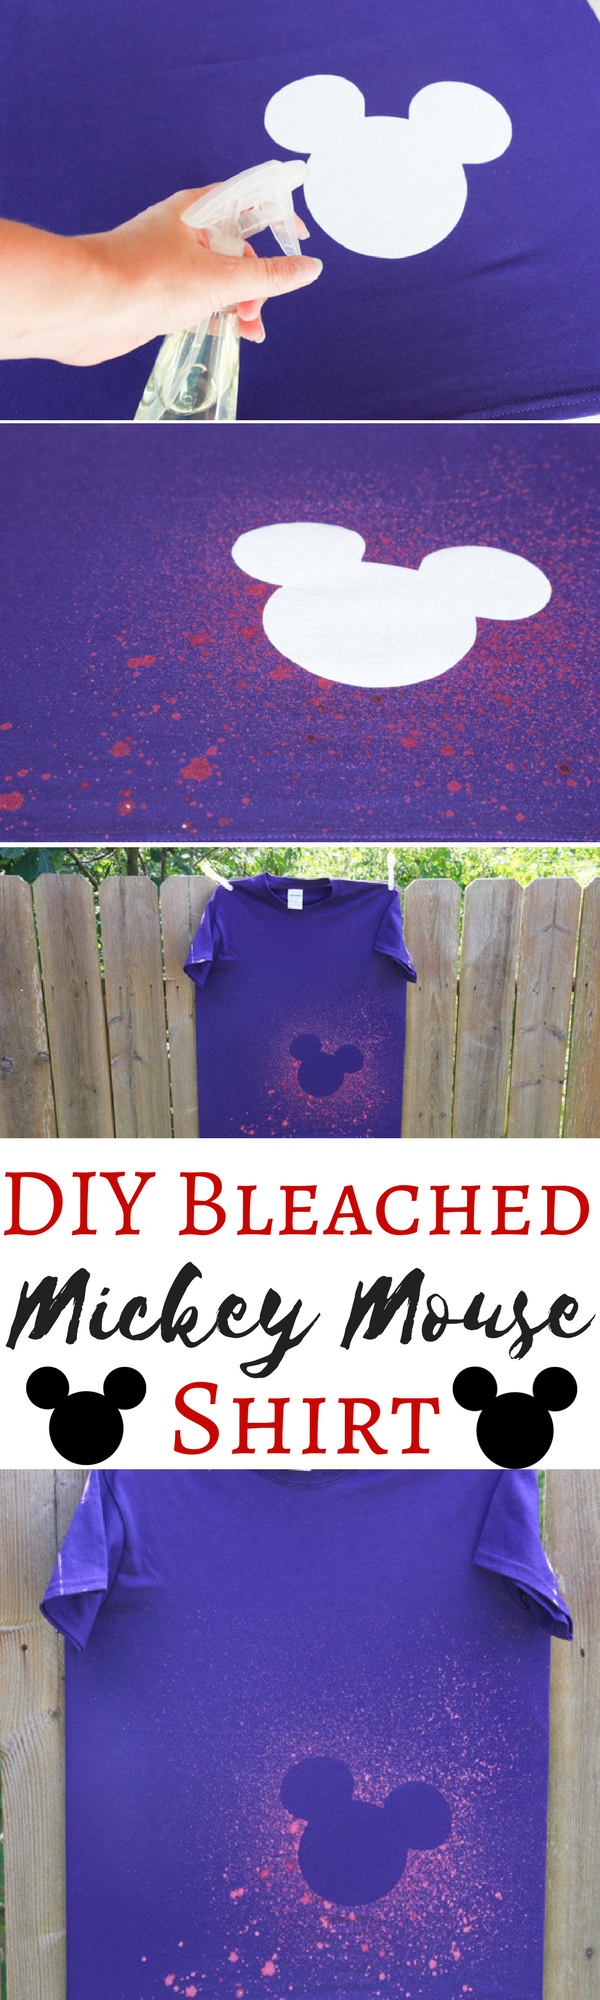 DIY Bleached Mickey Mouse Shirt